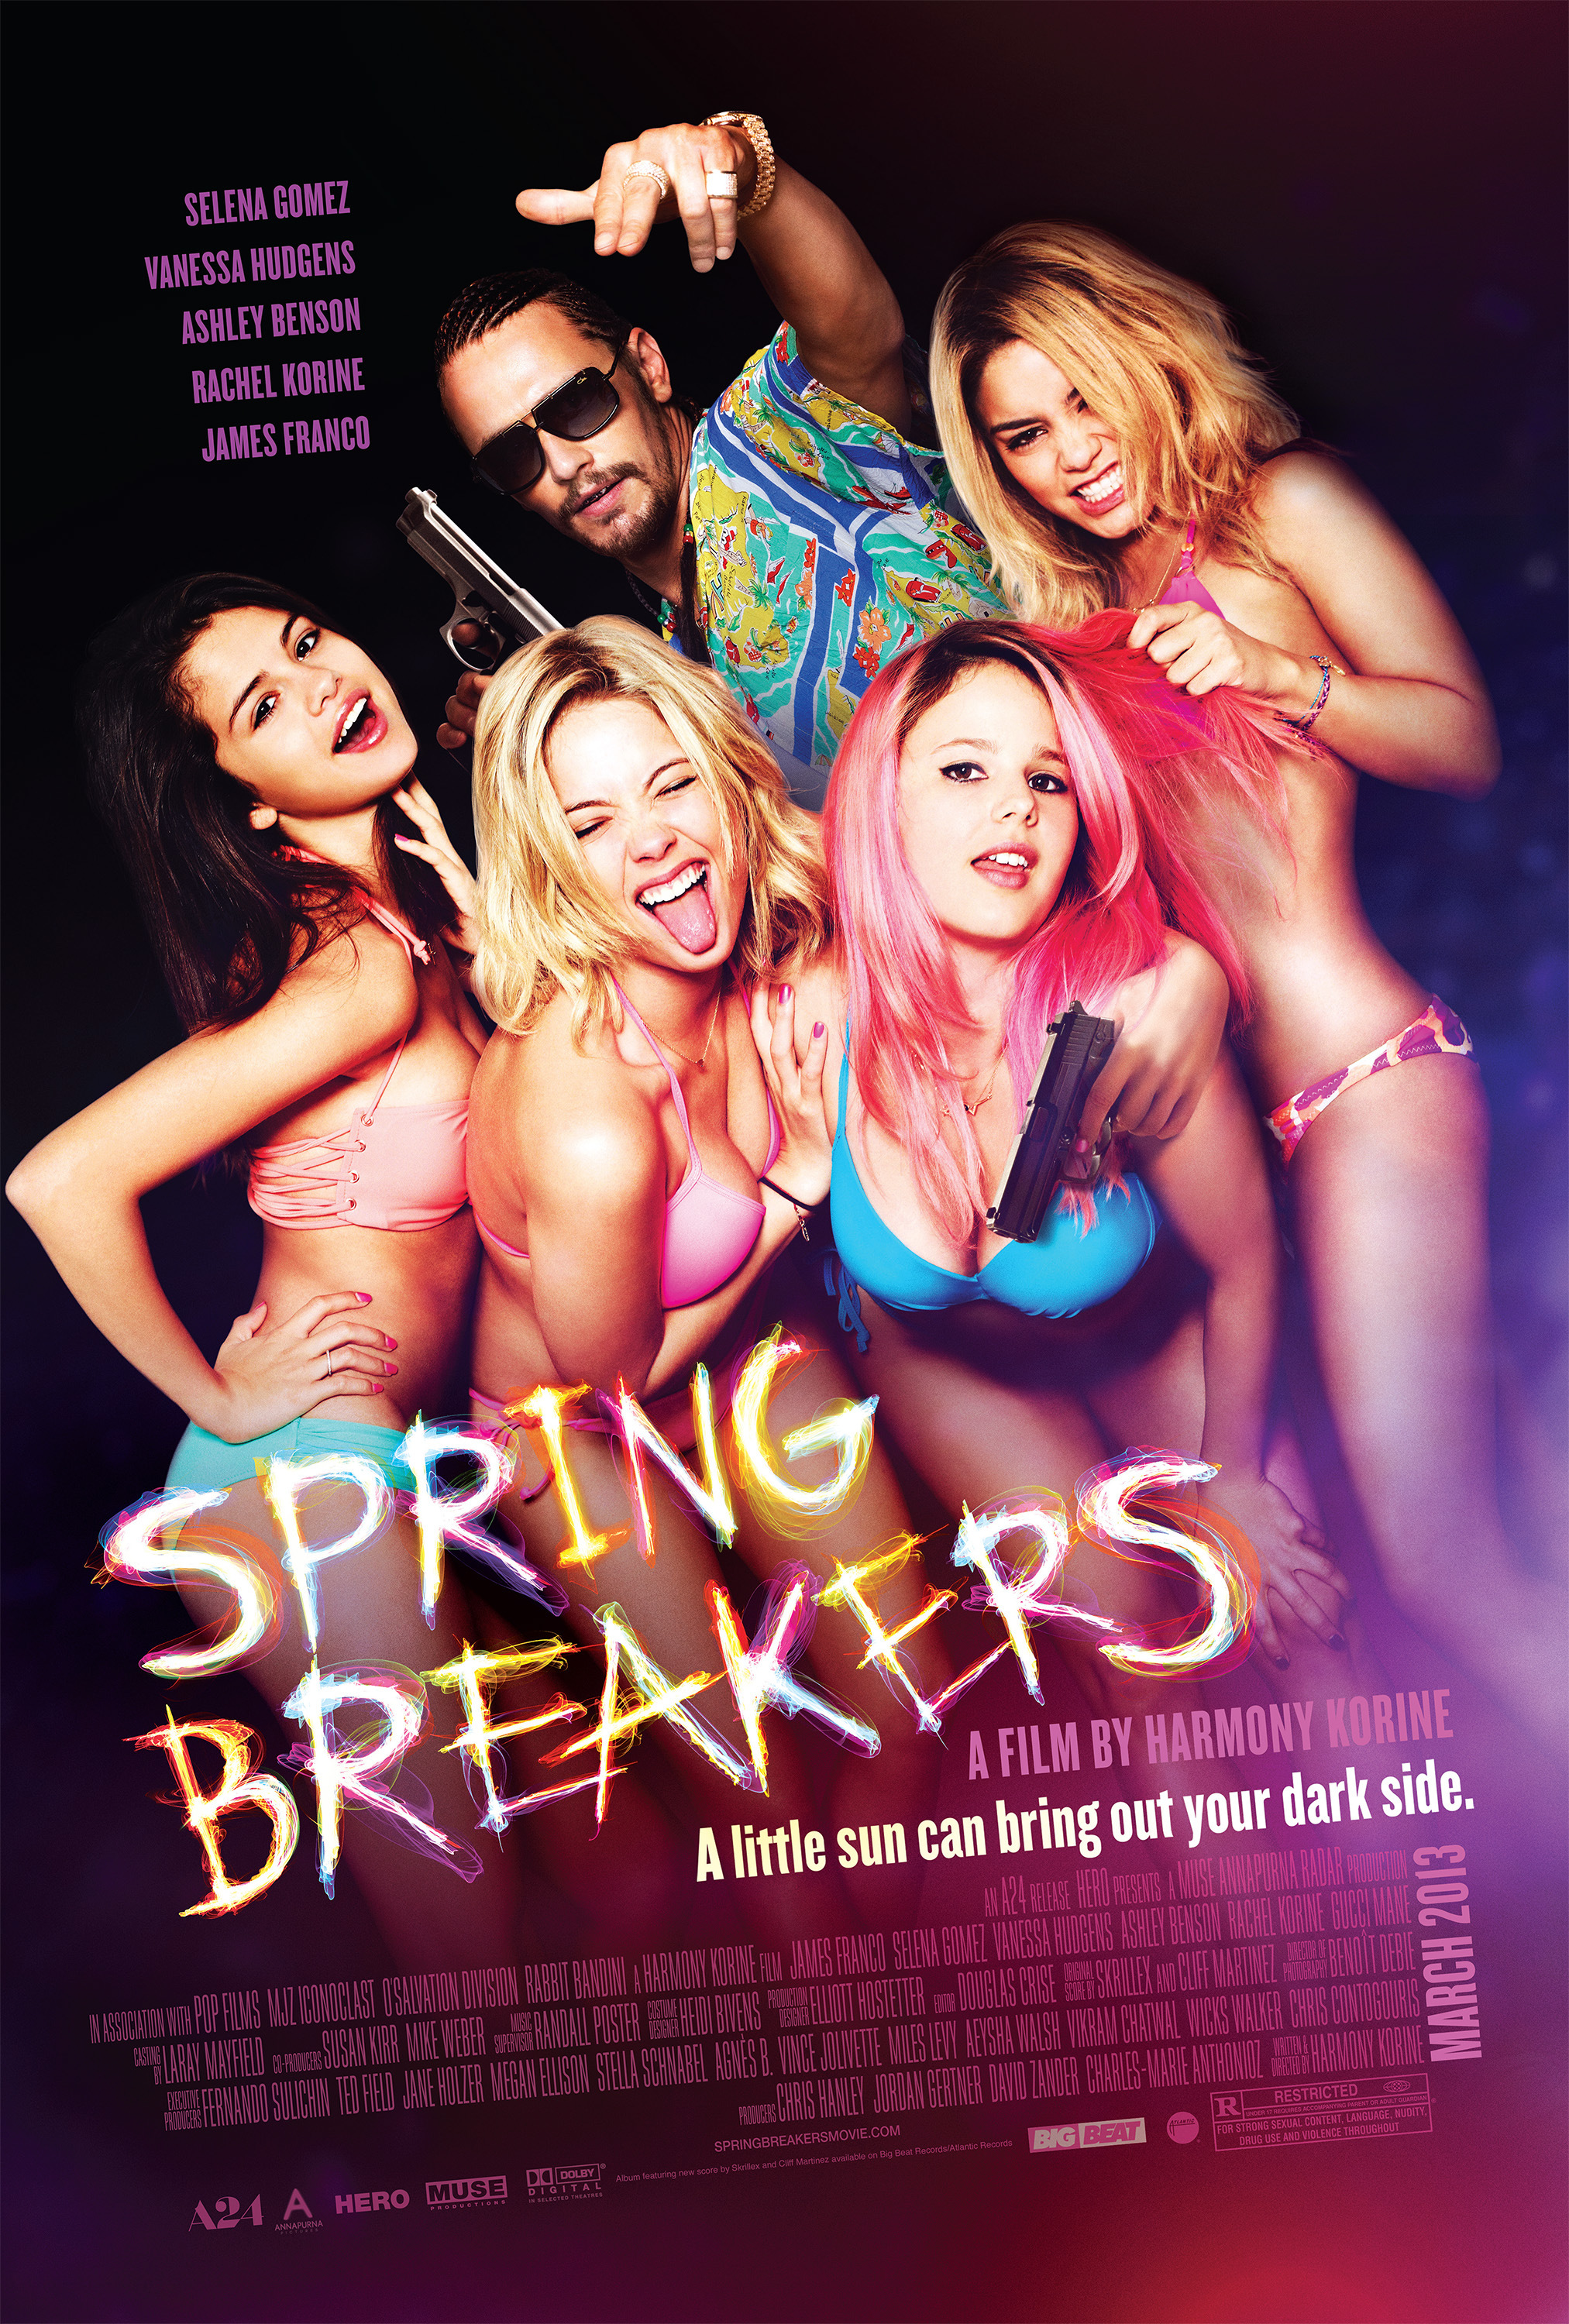 breakers movie Spring